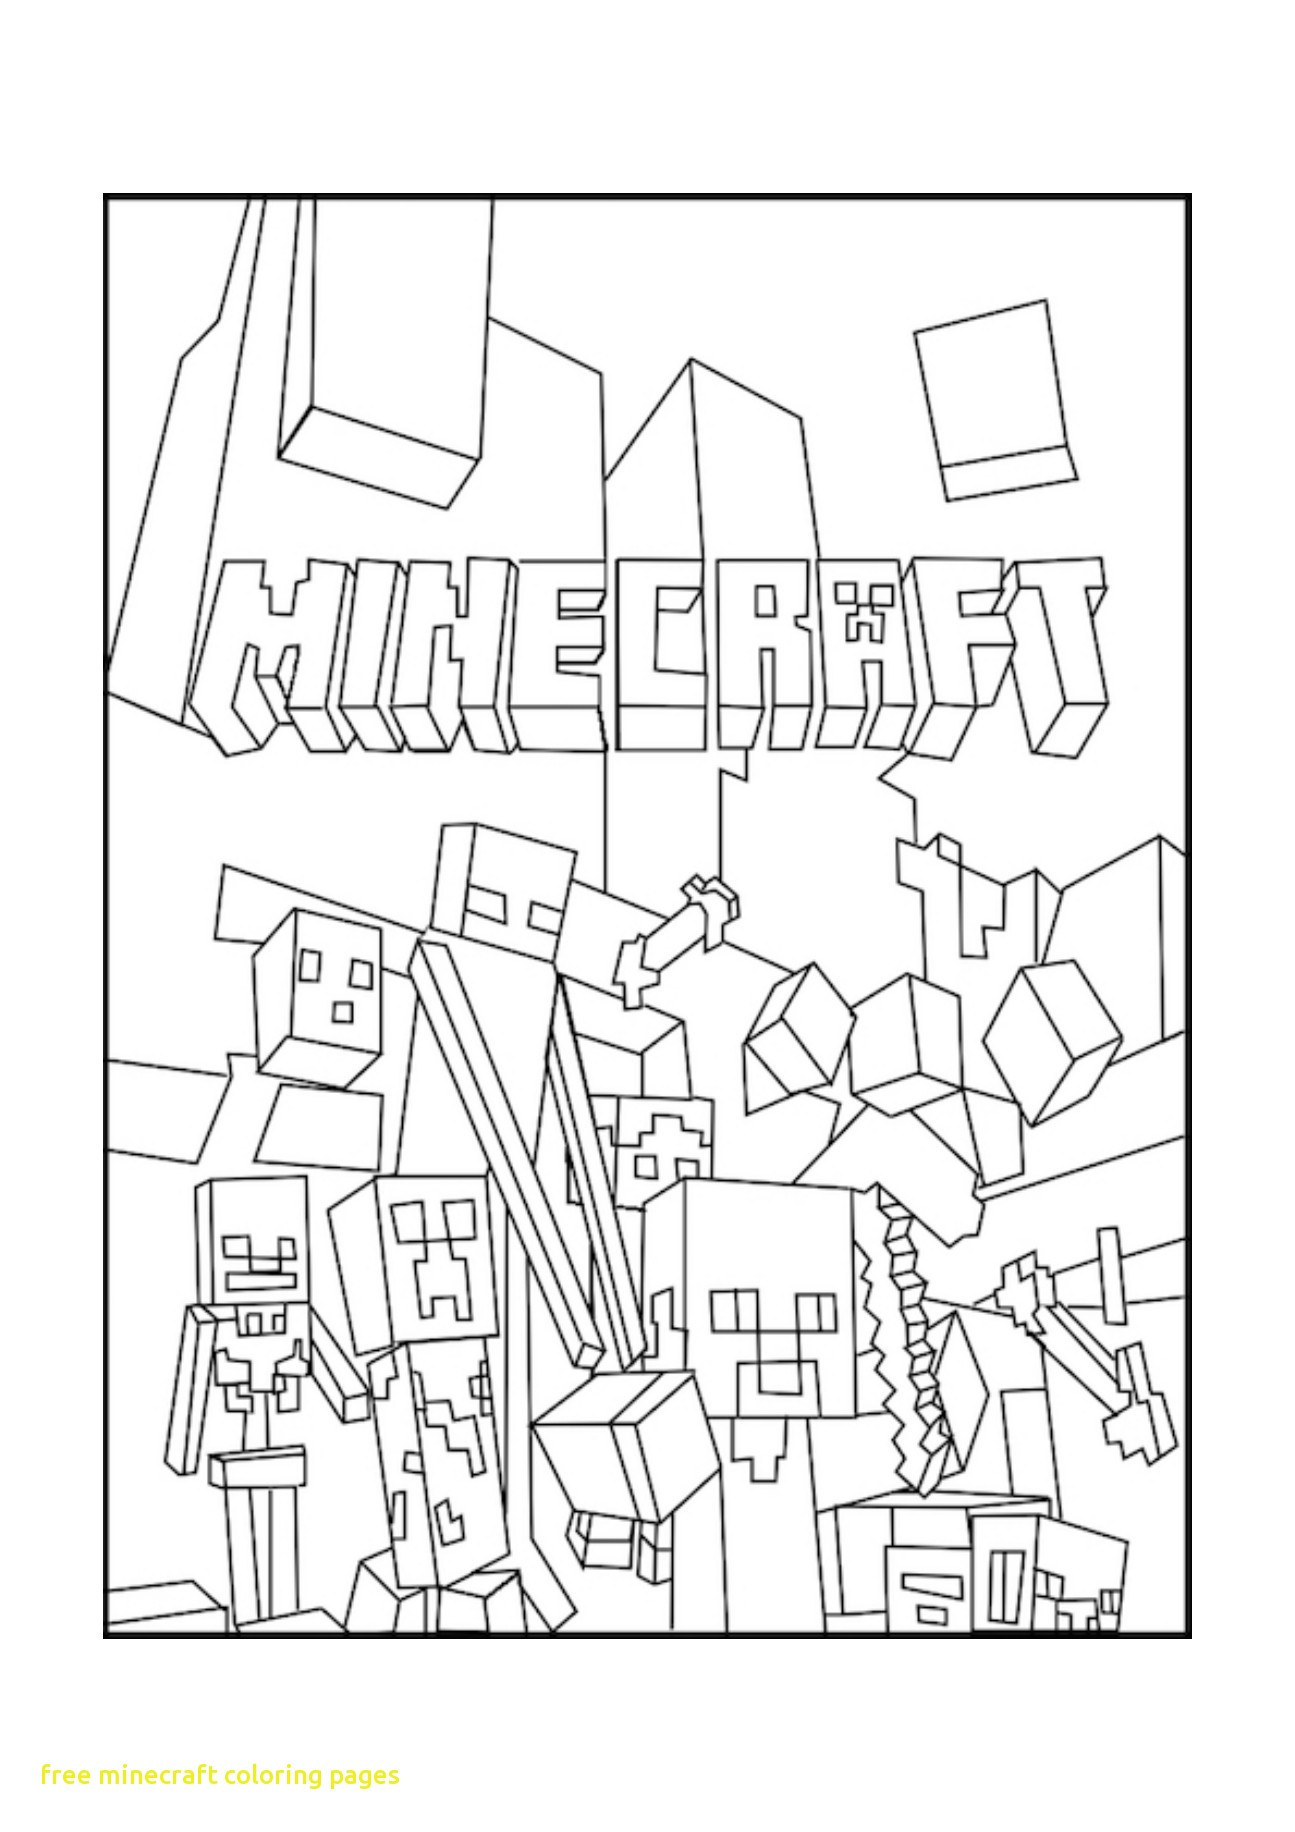 1295x1832 Dantdm Coloring Pages Roblox To Printied Free Minecraft Co Stuning